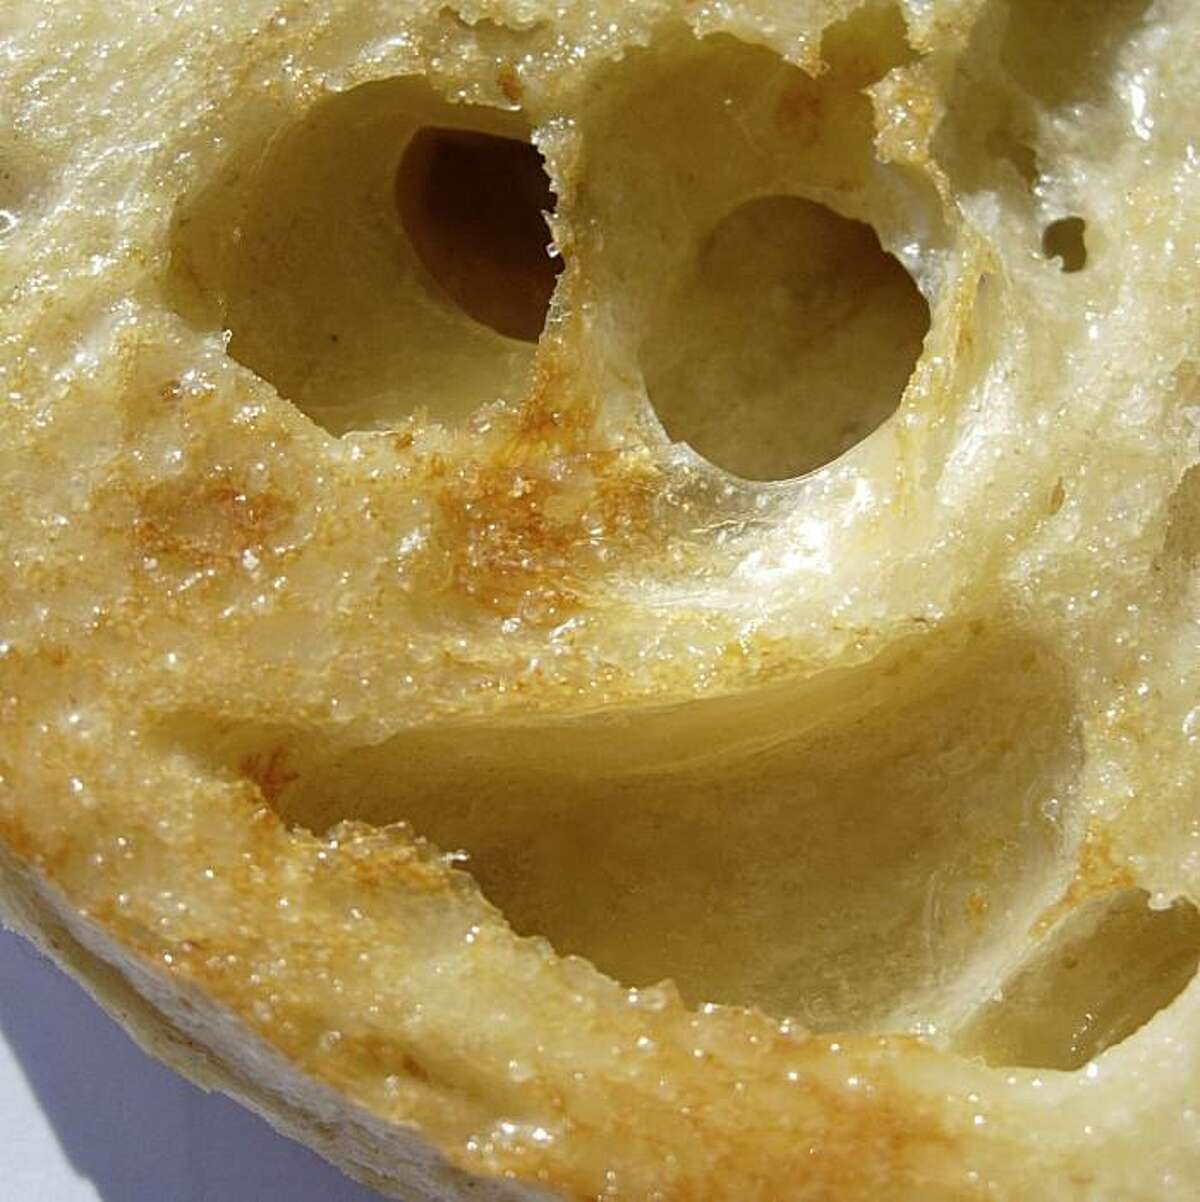 Ruth Kaiser this smiley face seen in a buttered sourdough piece of toast. Two years ago, Lafayette pre-school teacher Ruth Kaiser started posting photos of what she calls